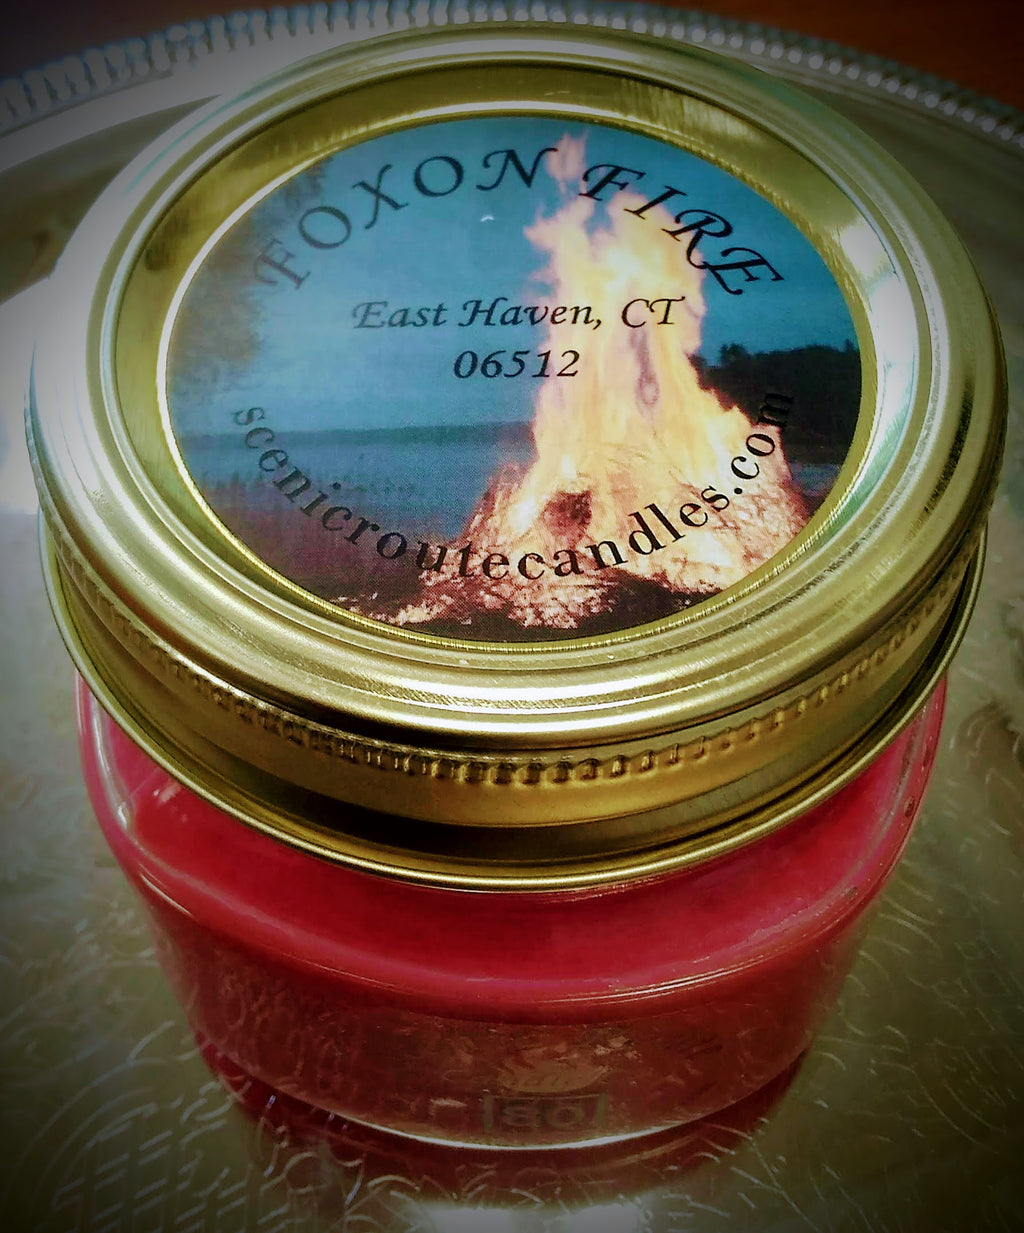 Foxon Fire, East Haven